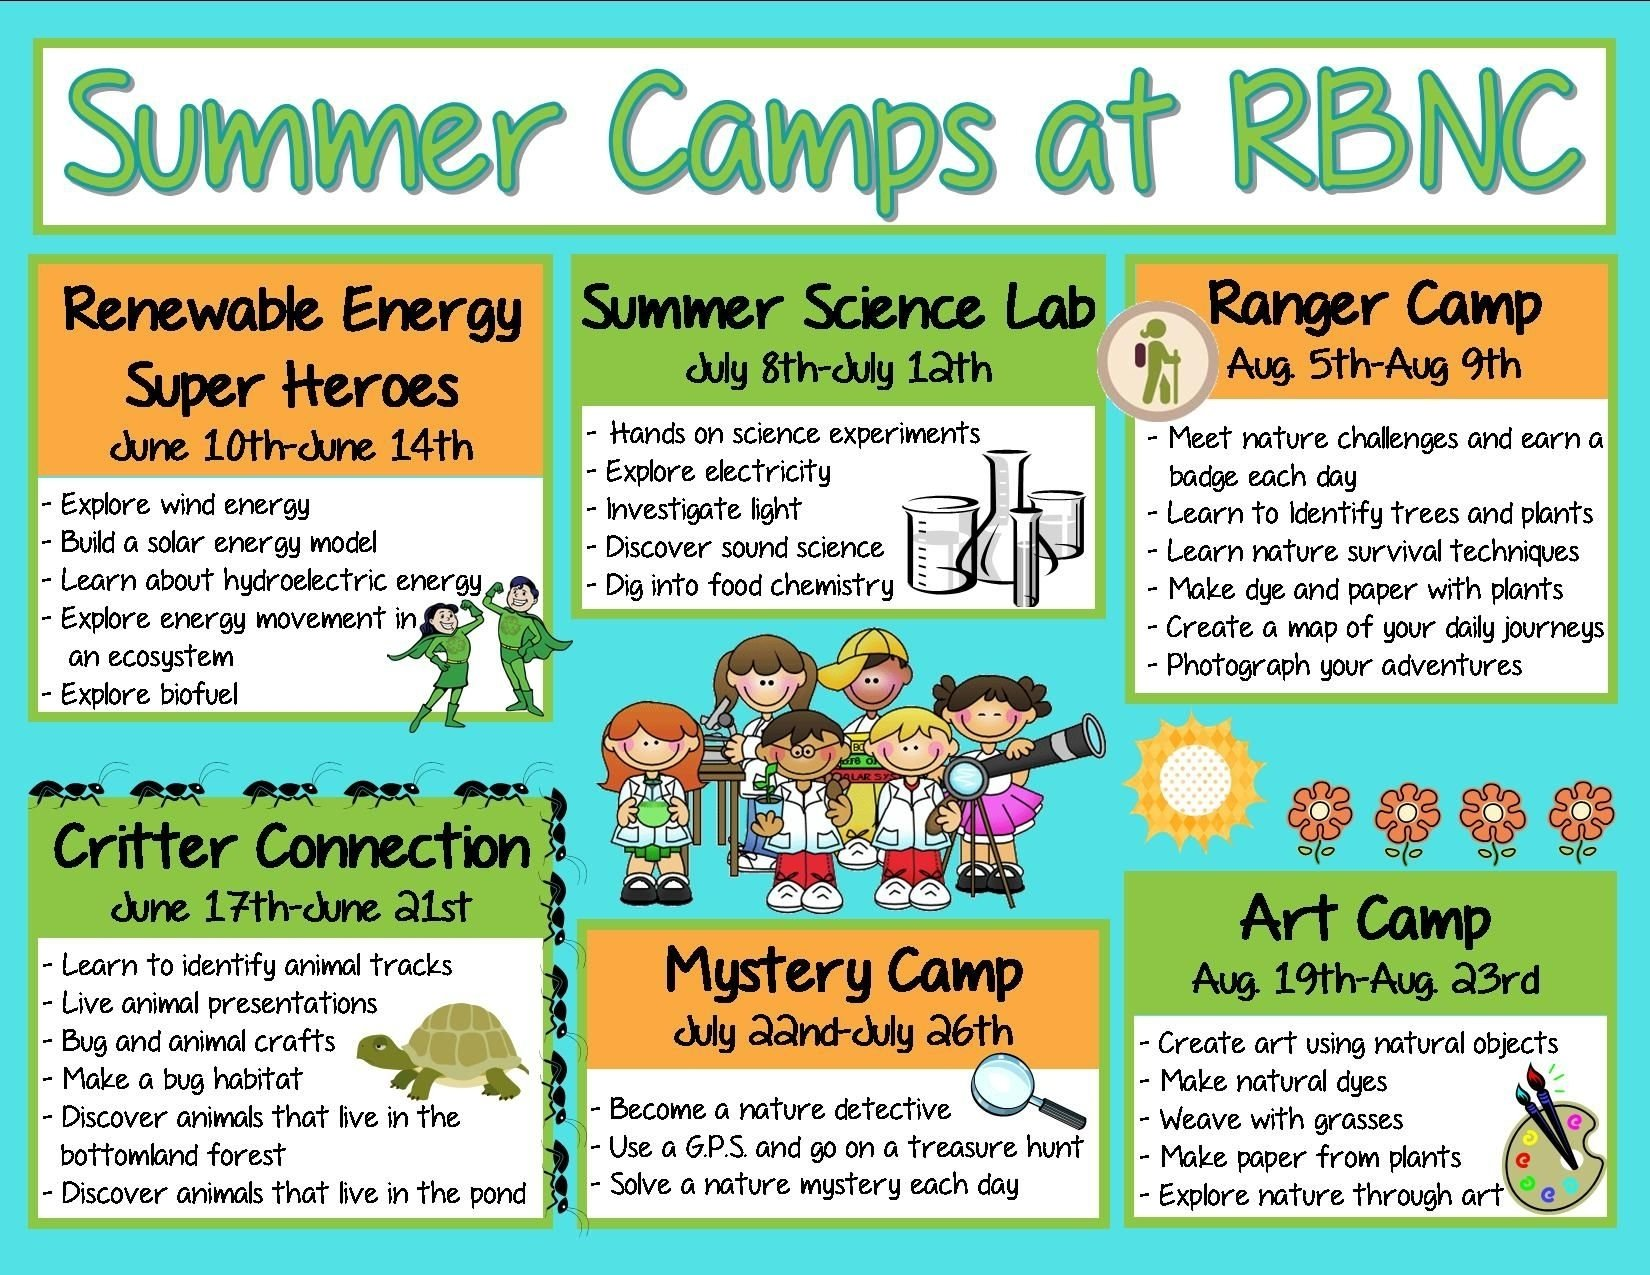 10 Cute Summer Camp Ideas For Kids summer camp themes summer camps for everyone at river bend kauz 1